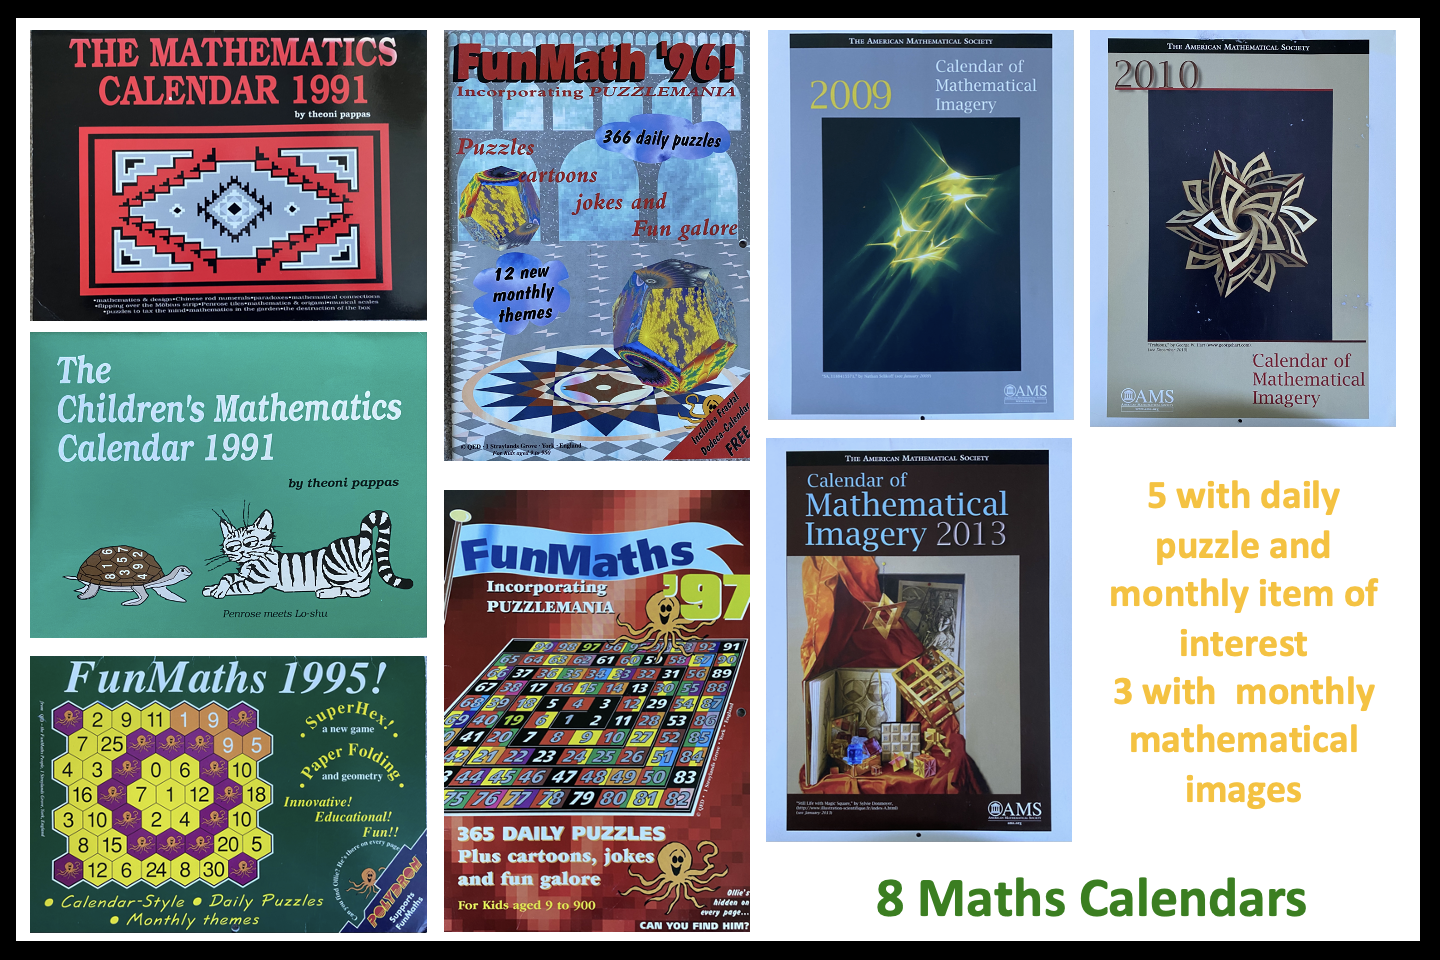 Puzzle and Other Old Mathematics Calendars